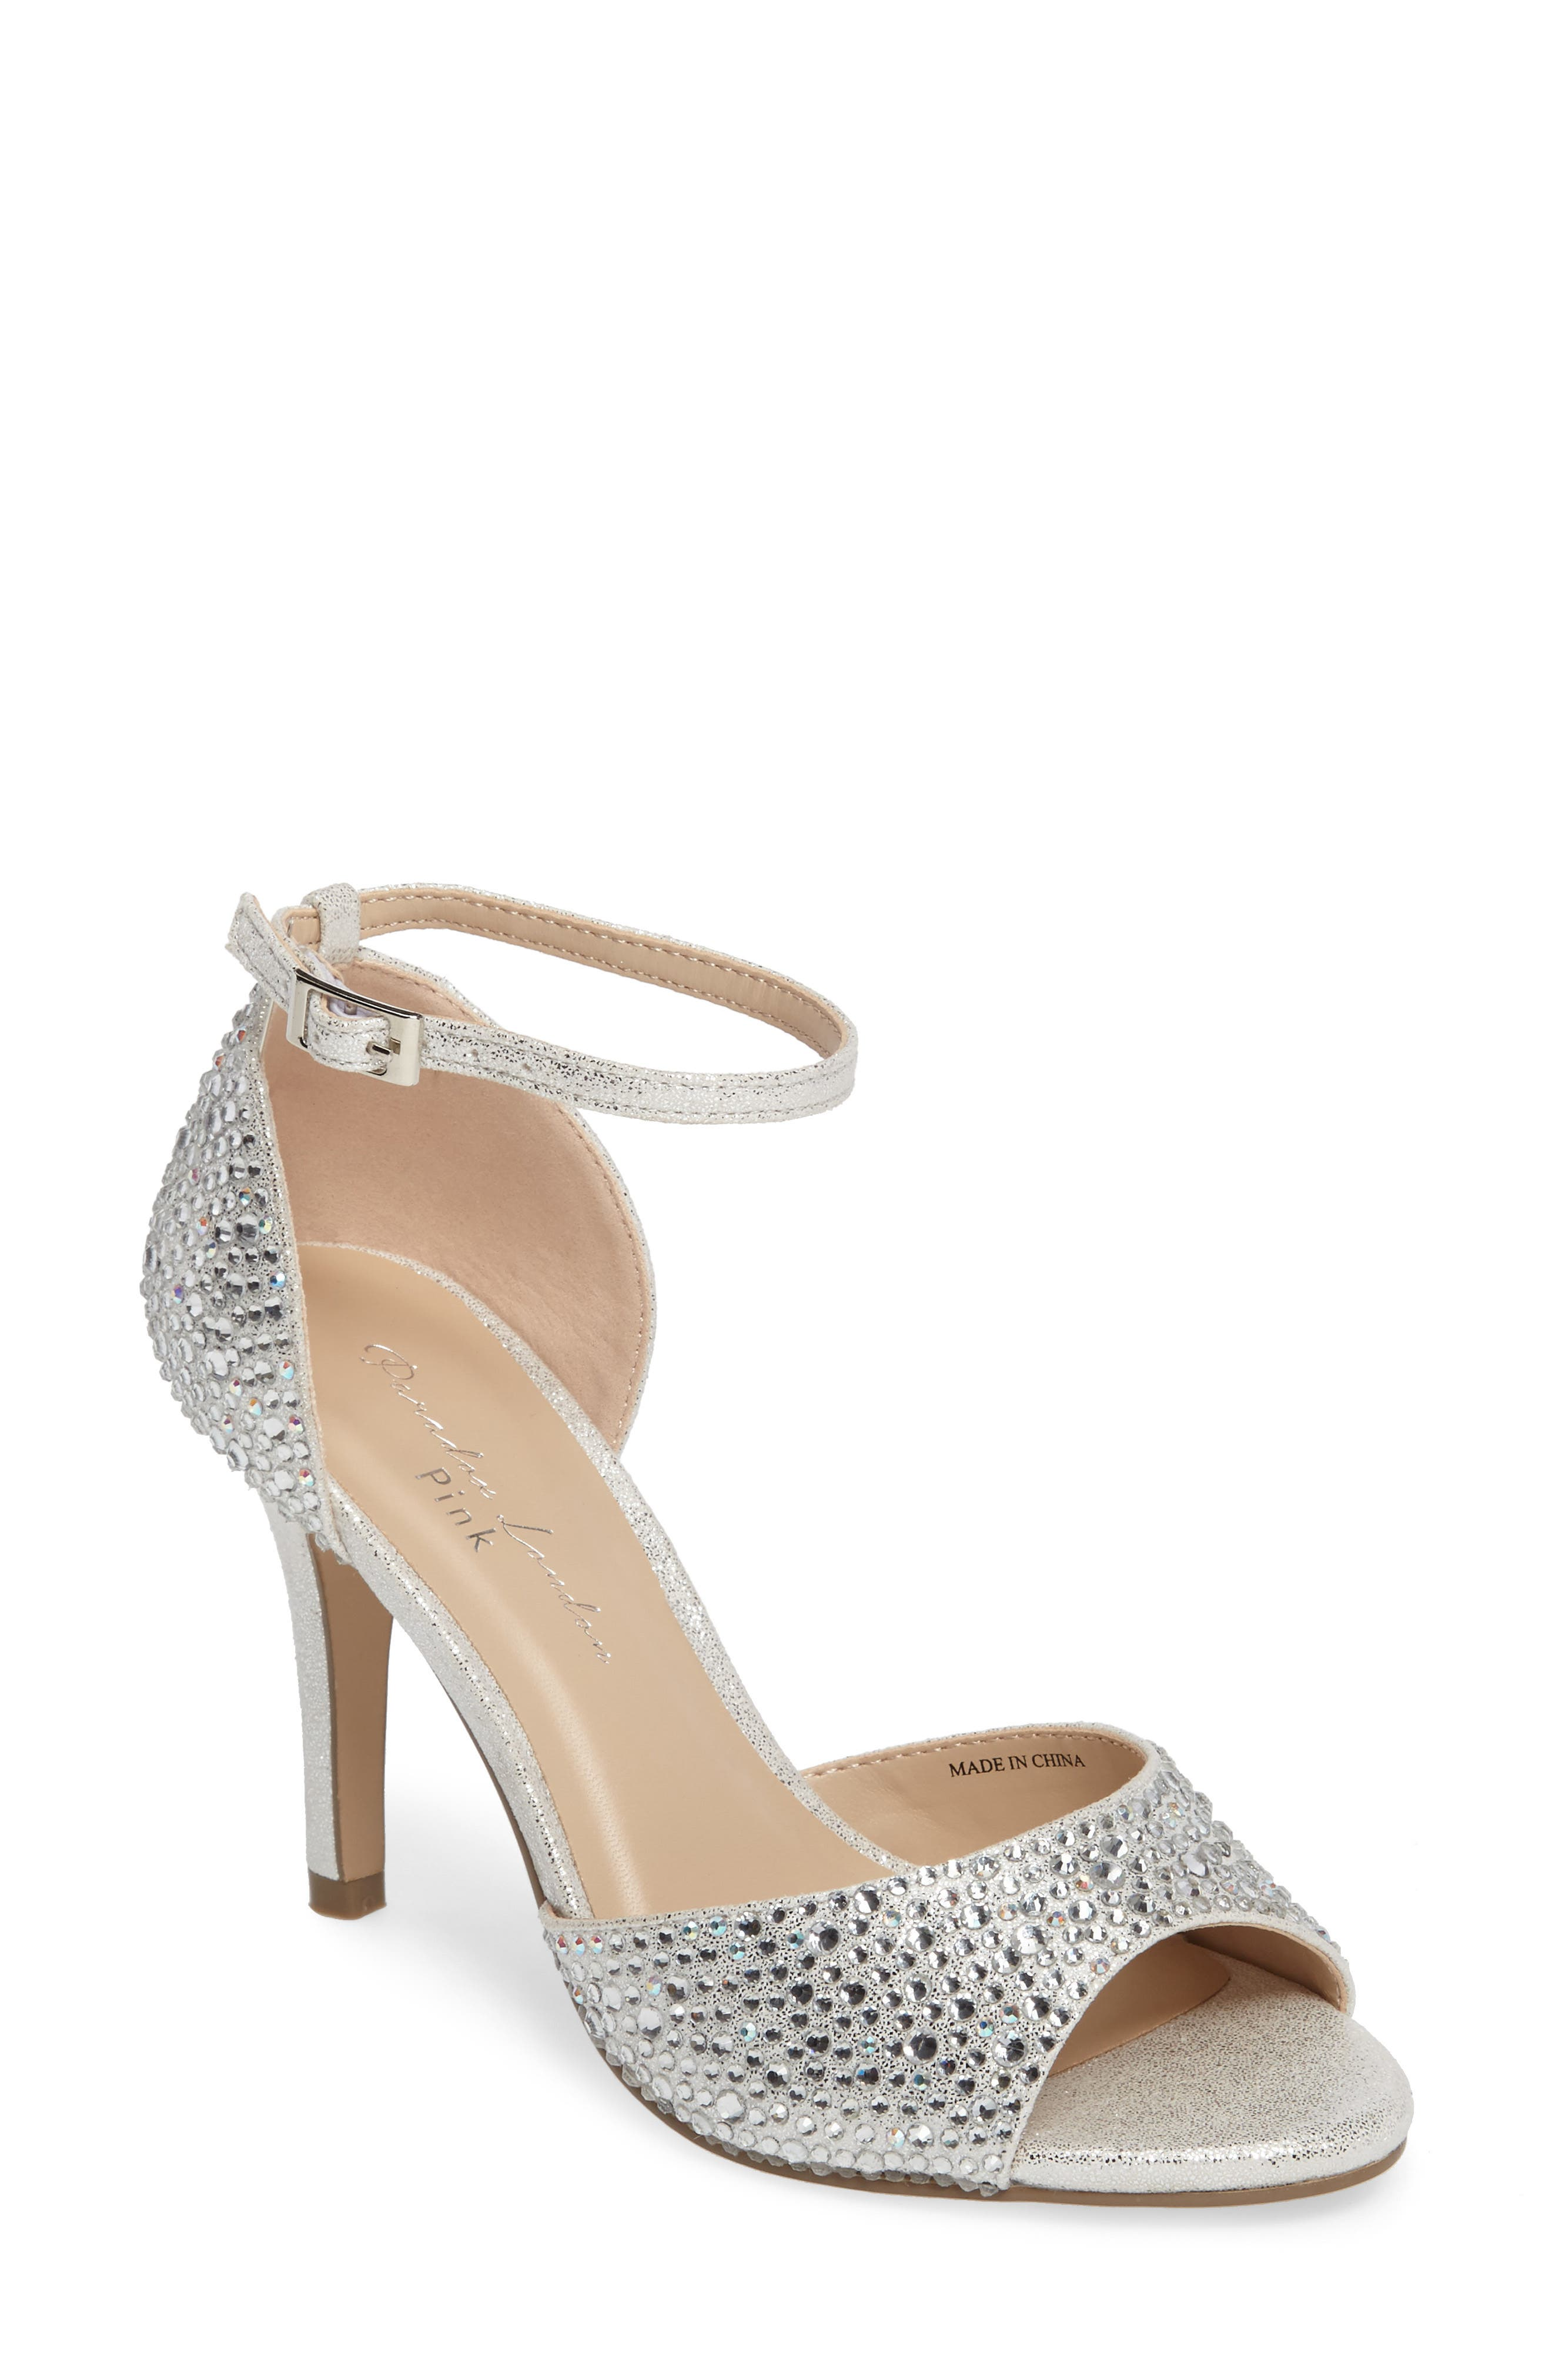 Mira Embellished Glitter Sandal,                             Main thumbnail 1, color,